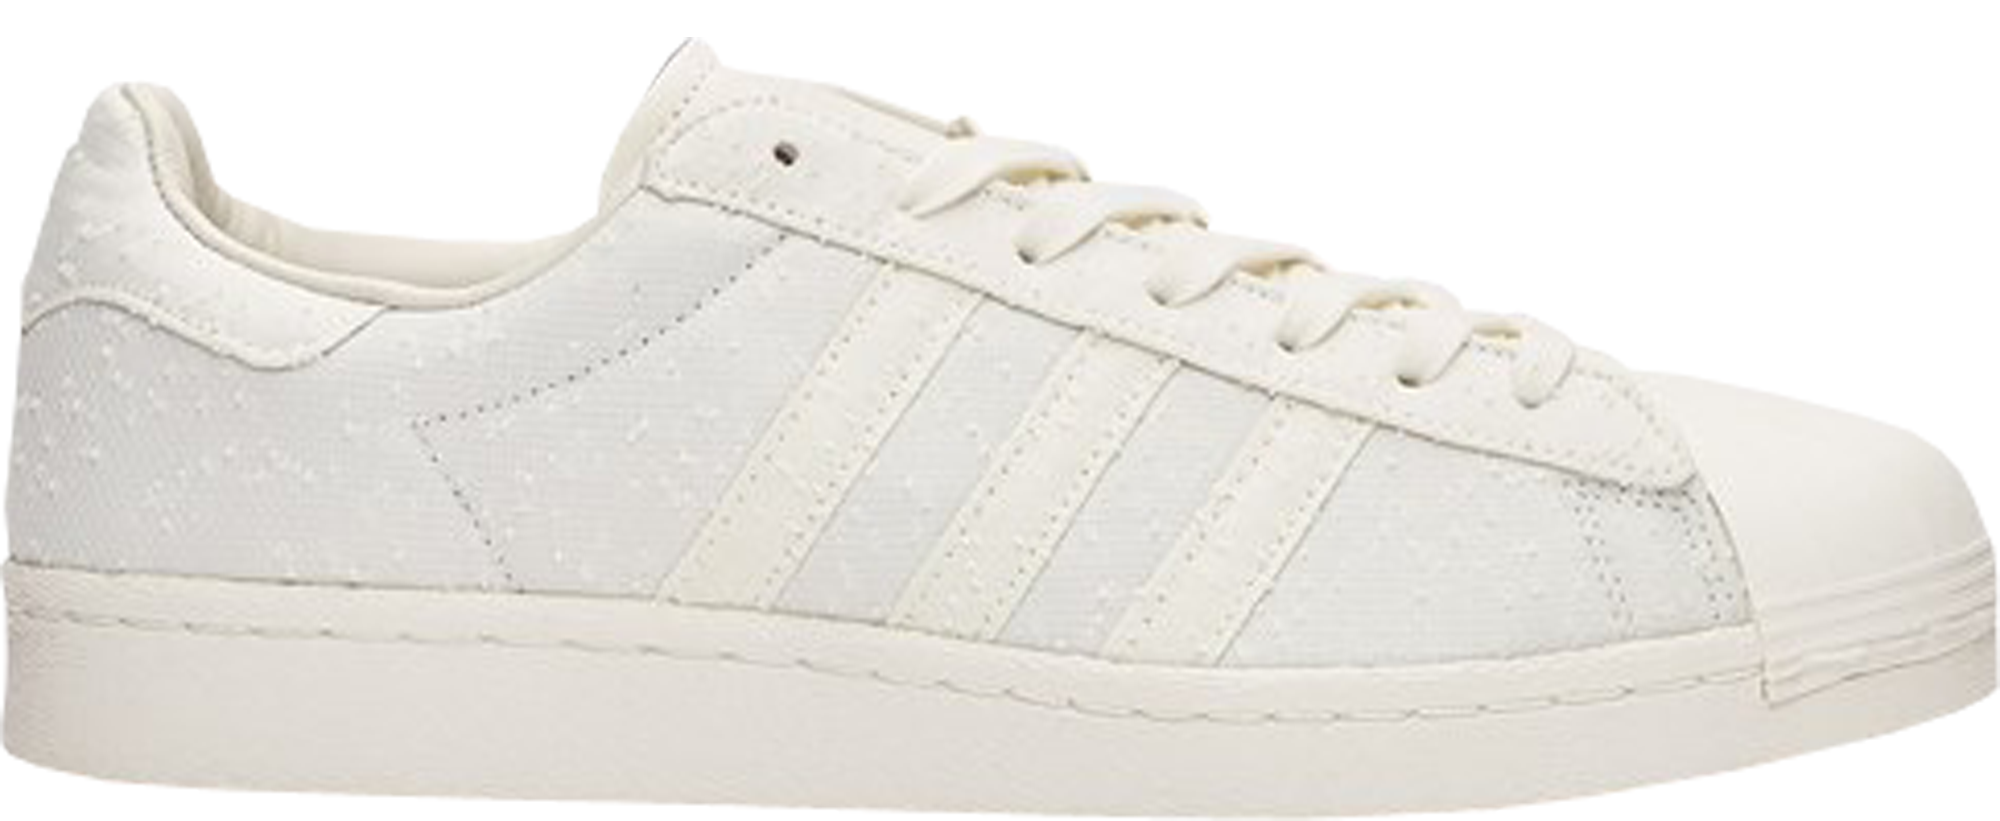 Cheap Adidas Superstar Vulc ADV Men's Skateboarding Shoe White/Scarlet